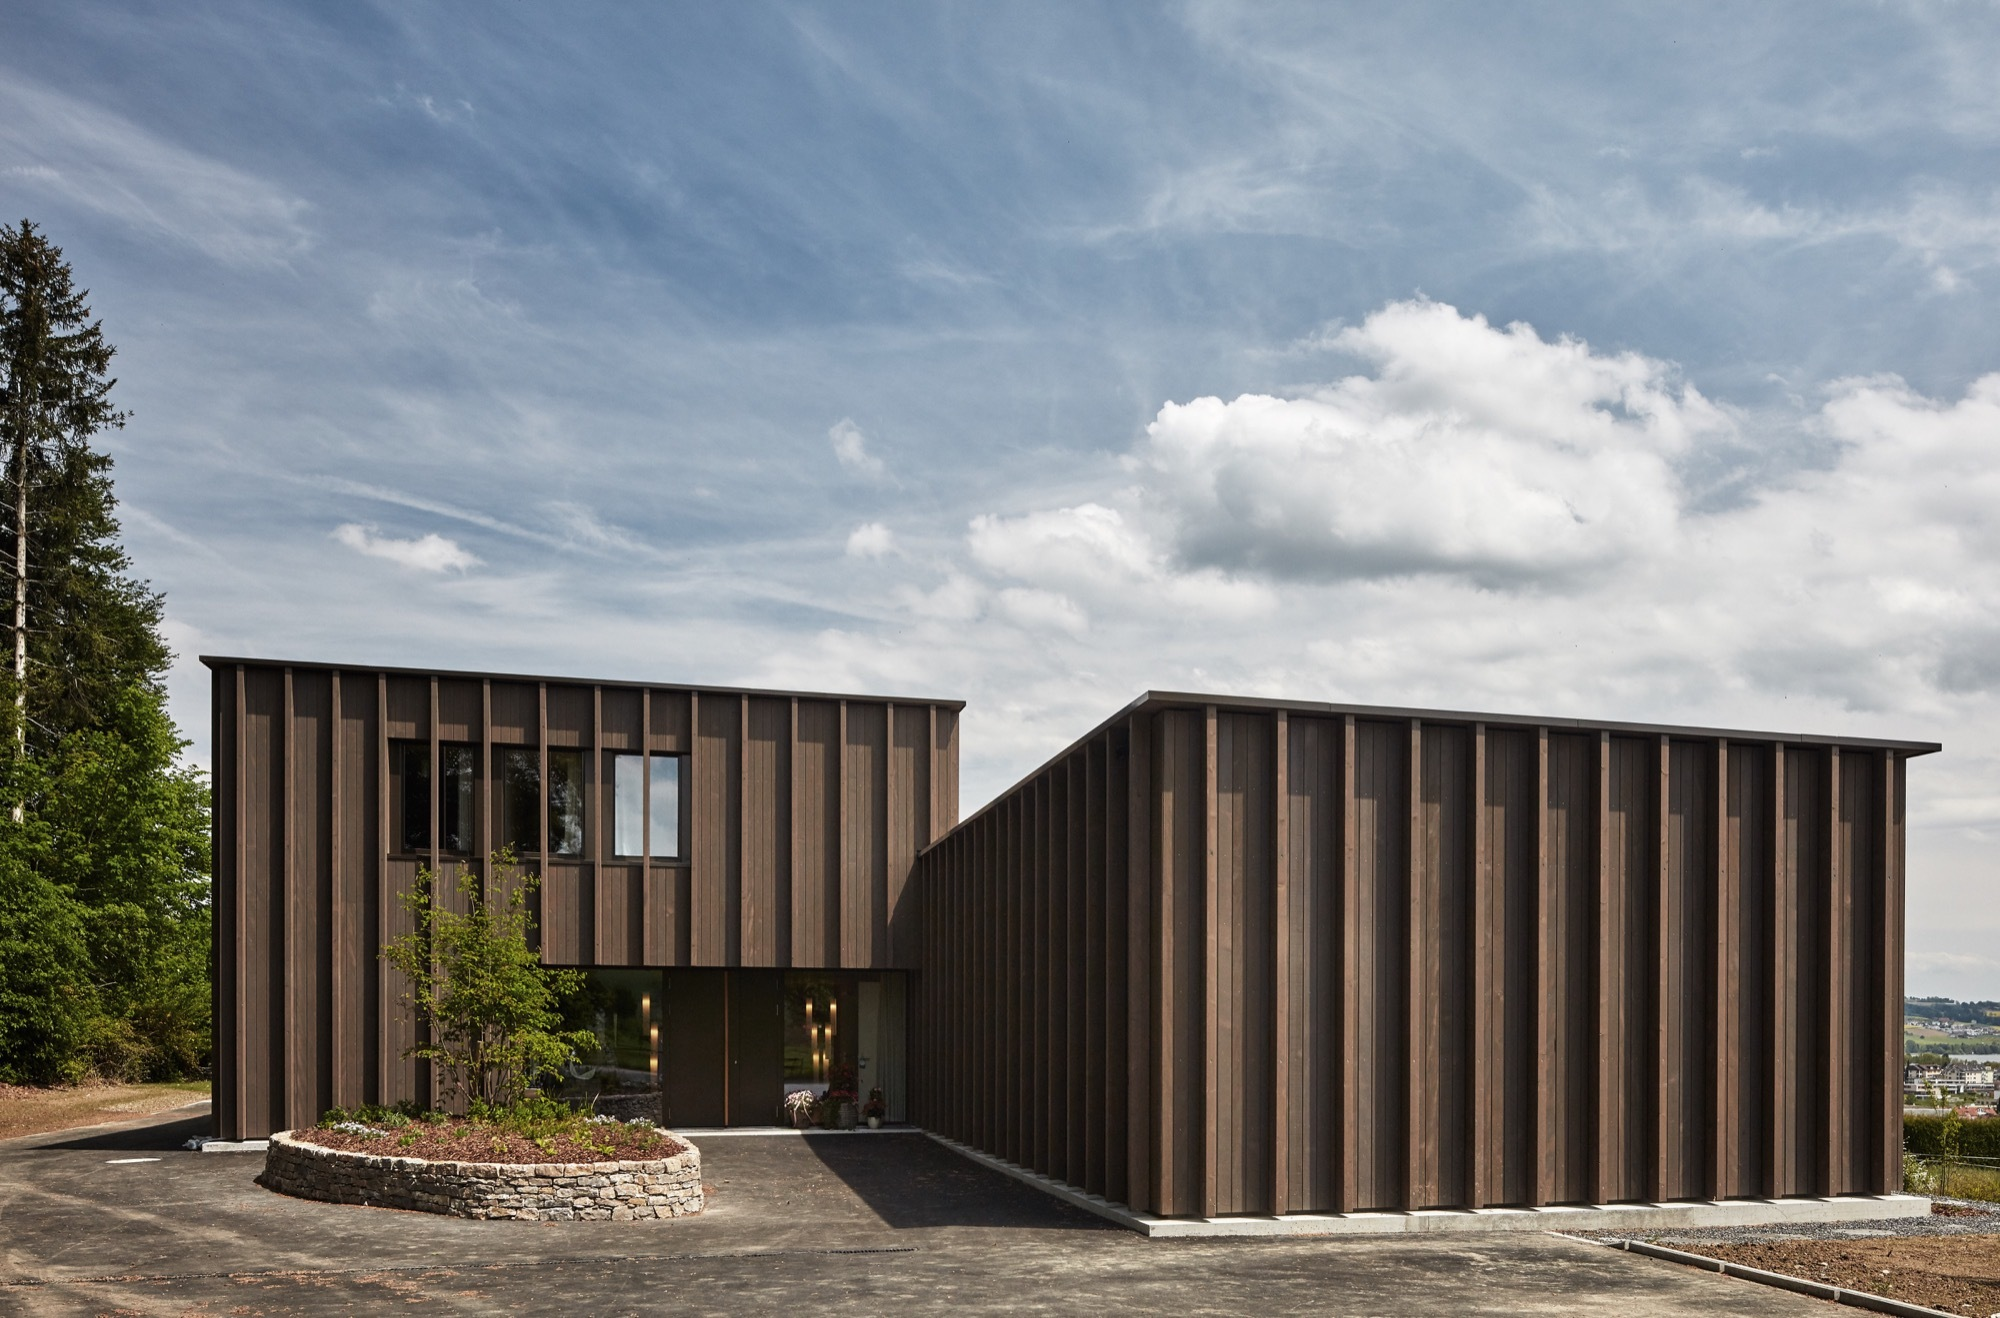 Hospital architecture and design | ArchDaily